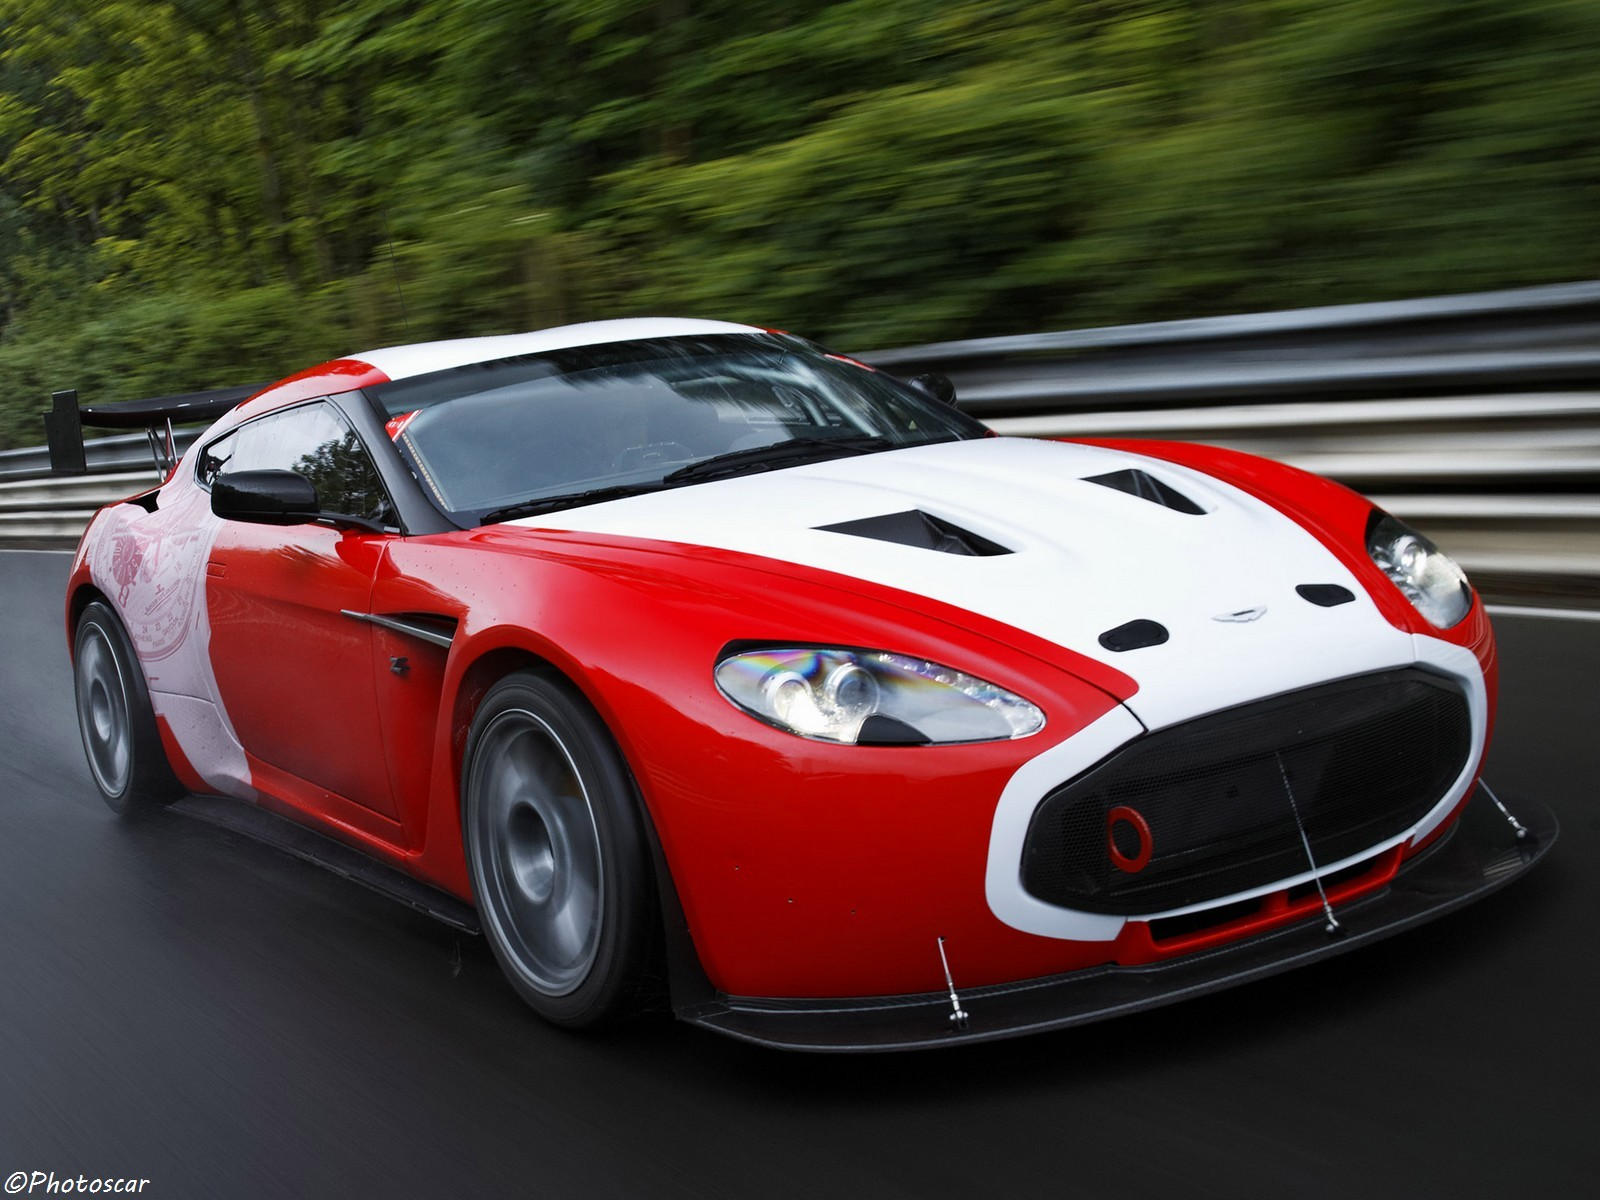 Aston Martin V12 Zagato Race Car 2011